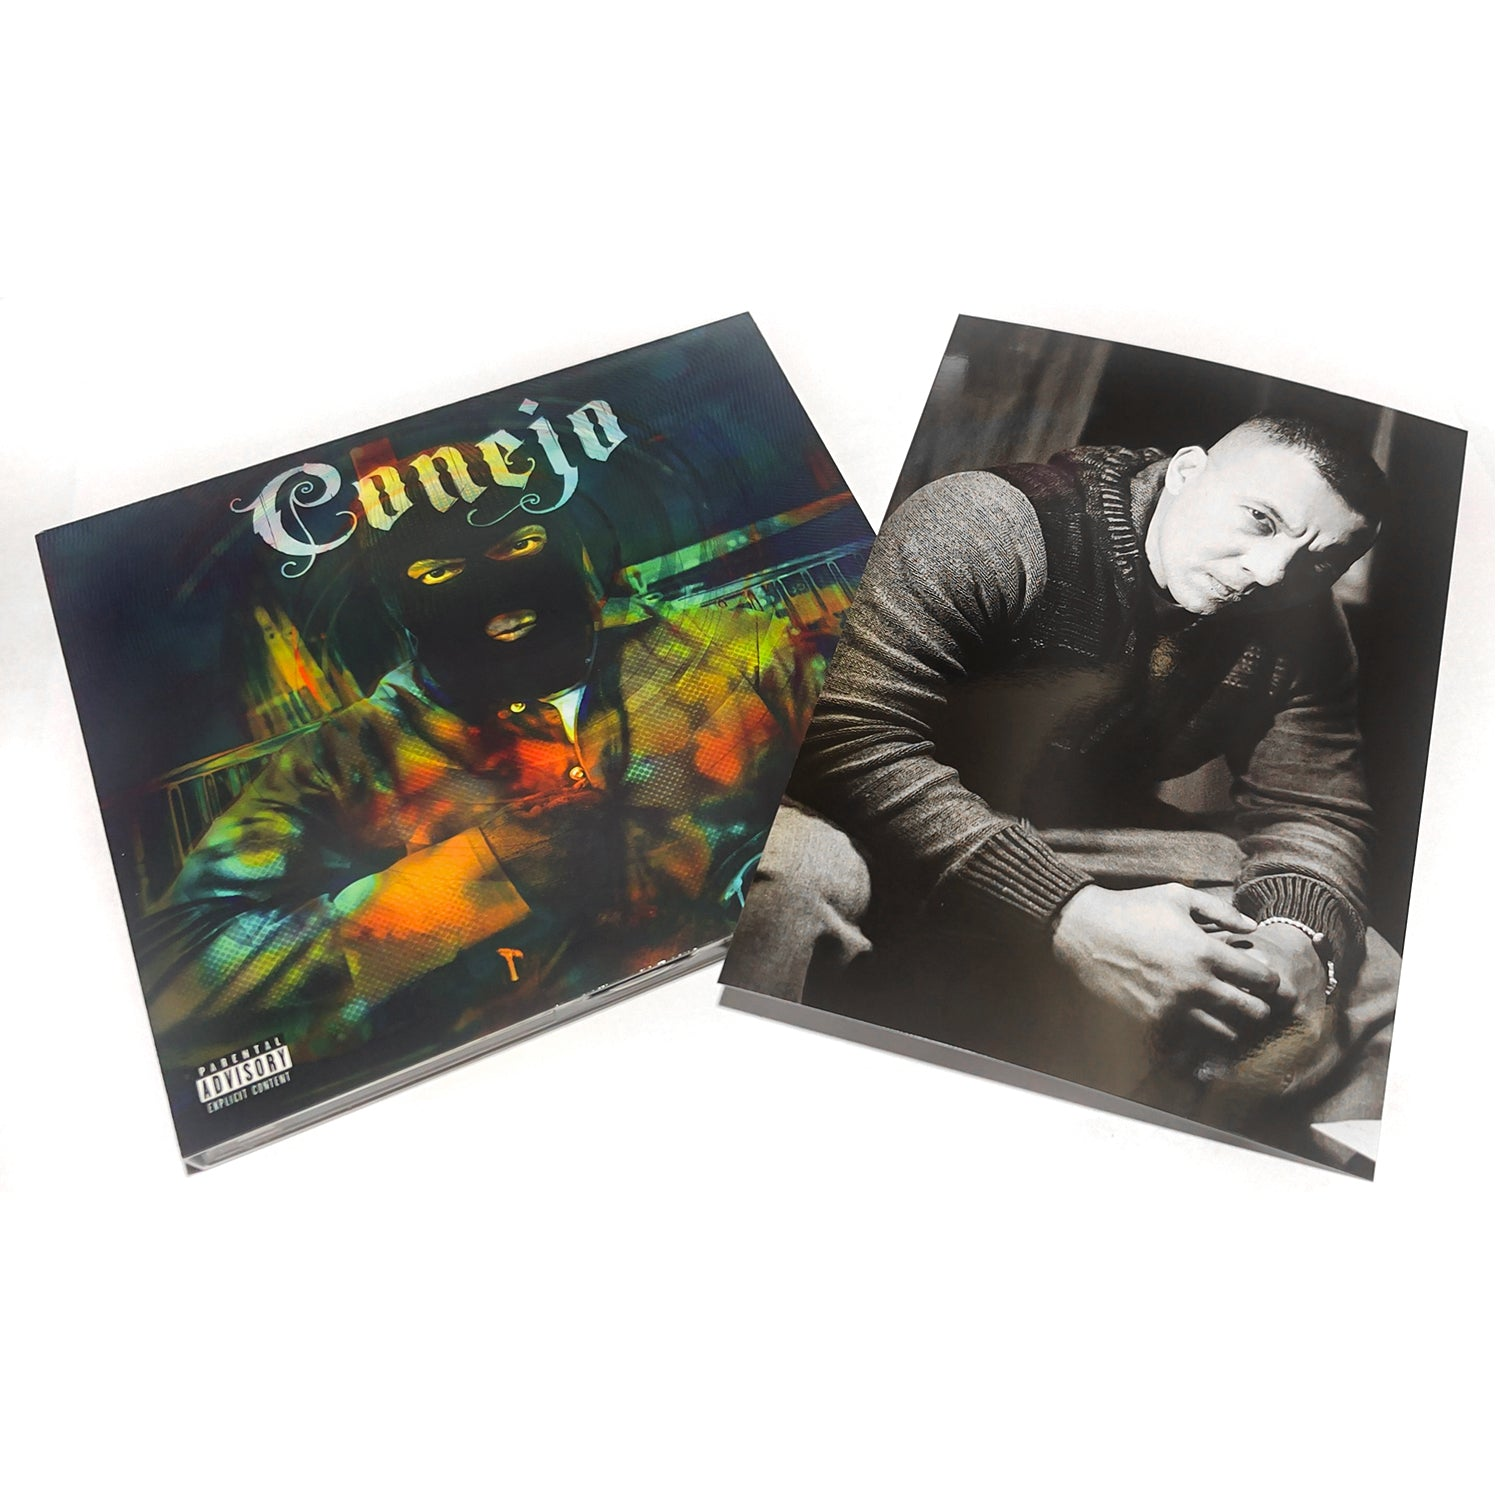 [Collectors Limited Edition] Agenda 32 - Conejo Album With Autograph Photo Print